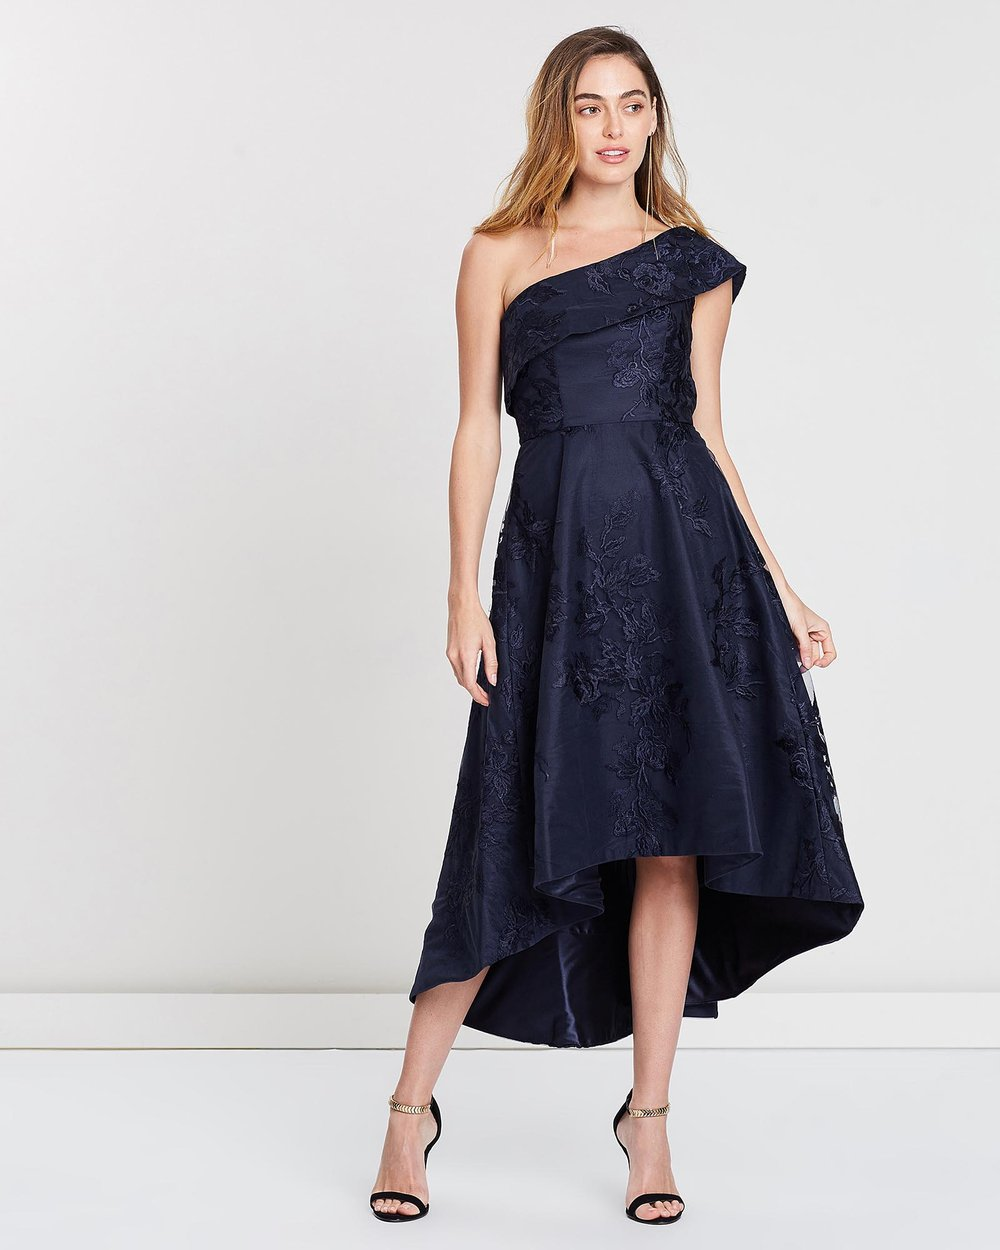 Sarah One-Shoulder Lace Flare Dress by Bariano Online  54fd23a31